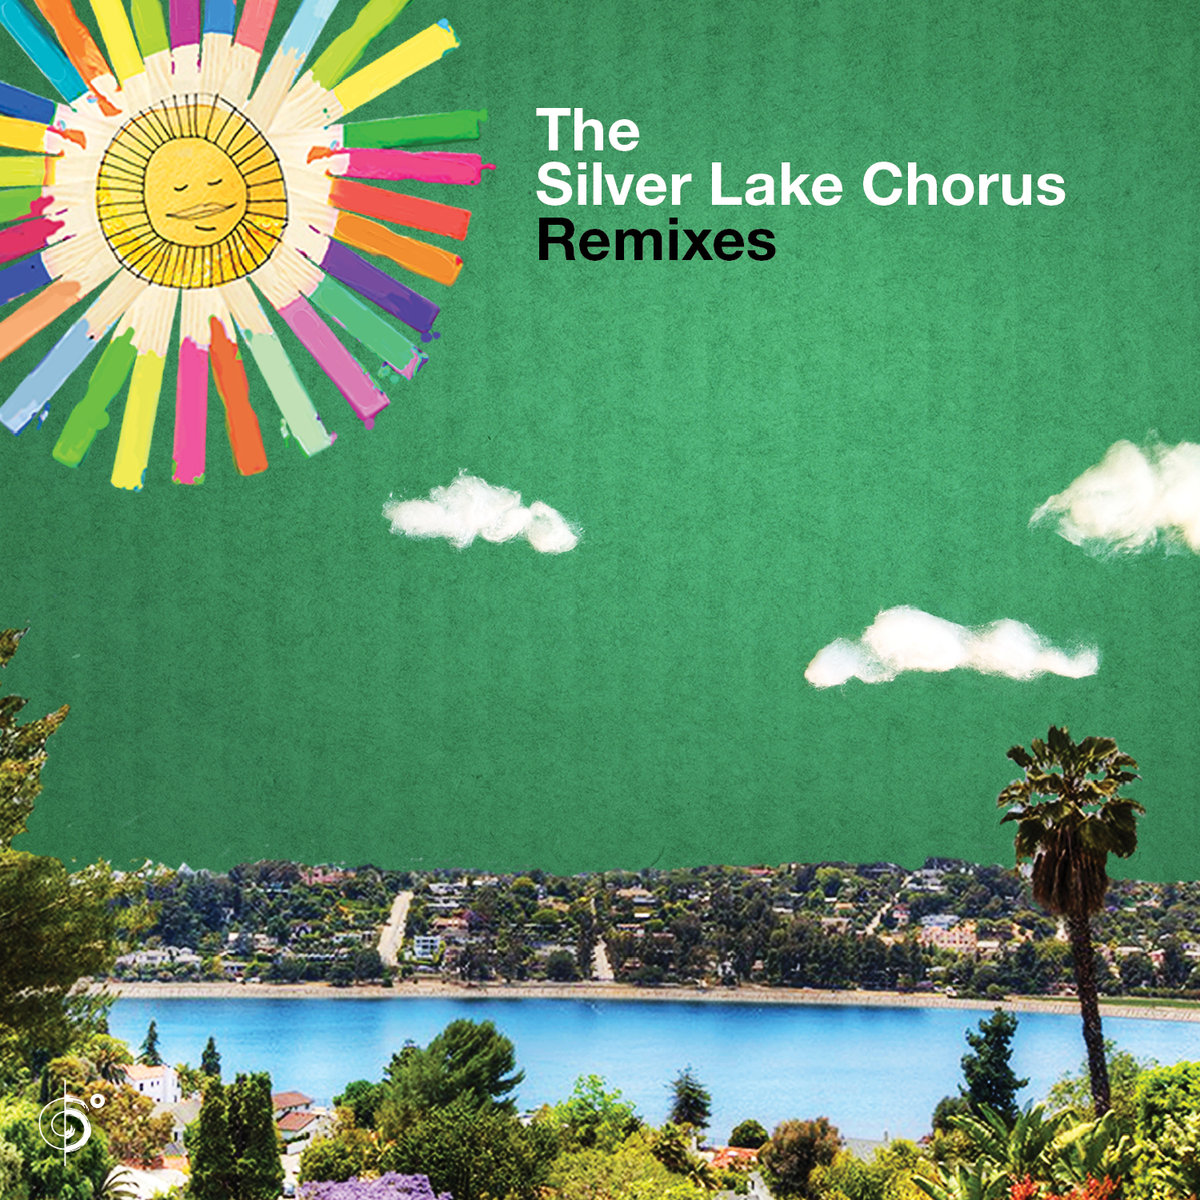 The Silver Lake Chorus Remixes Available Now!